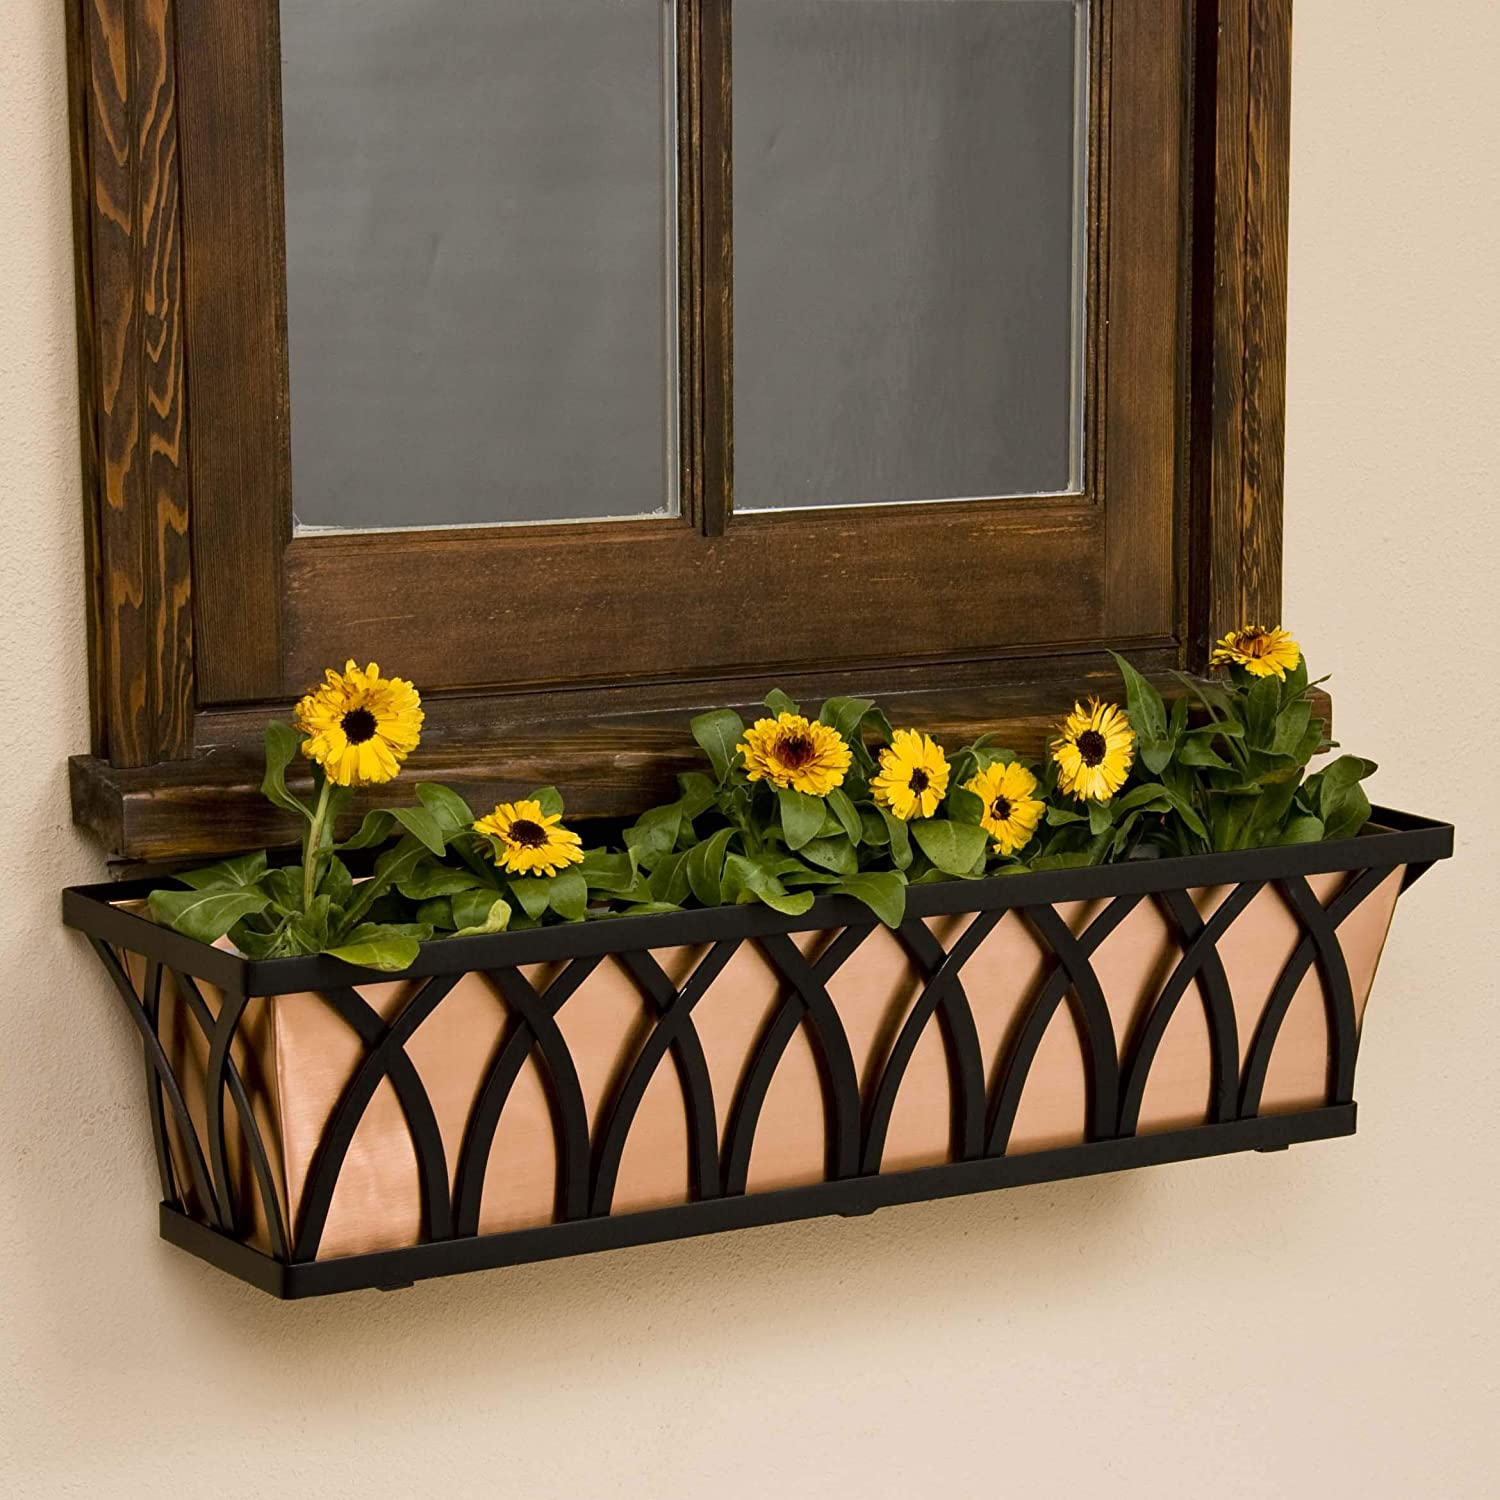 48 inch Arch Tapered Max 55% OFF Iron Window w Liner Box Real Low price Copper